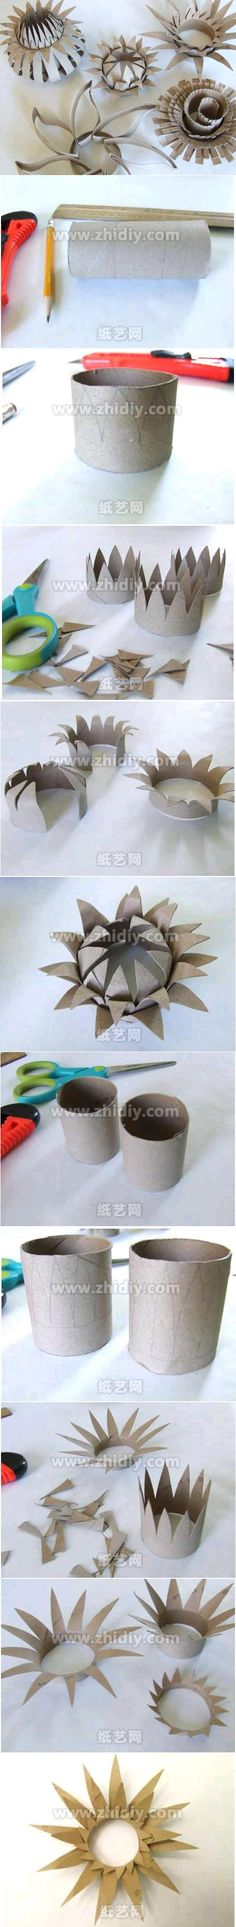 DIY toilet roll craft that I think is so amazing!!